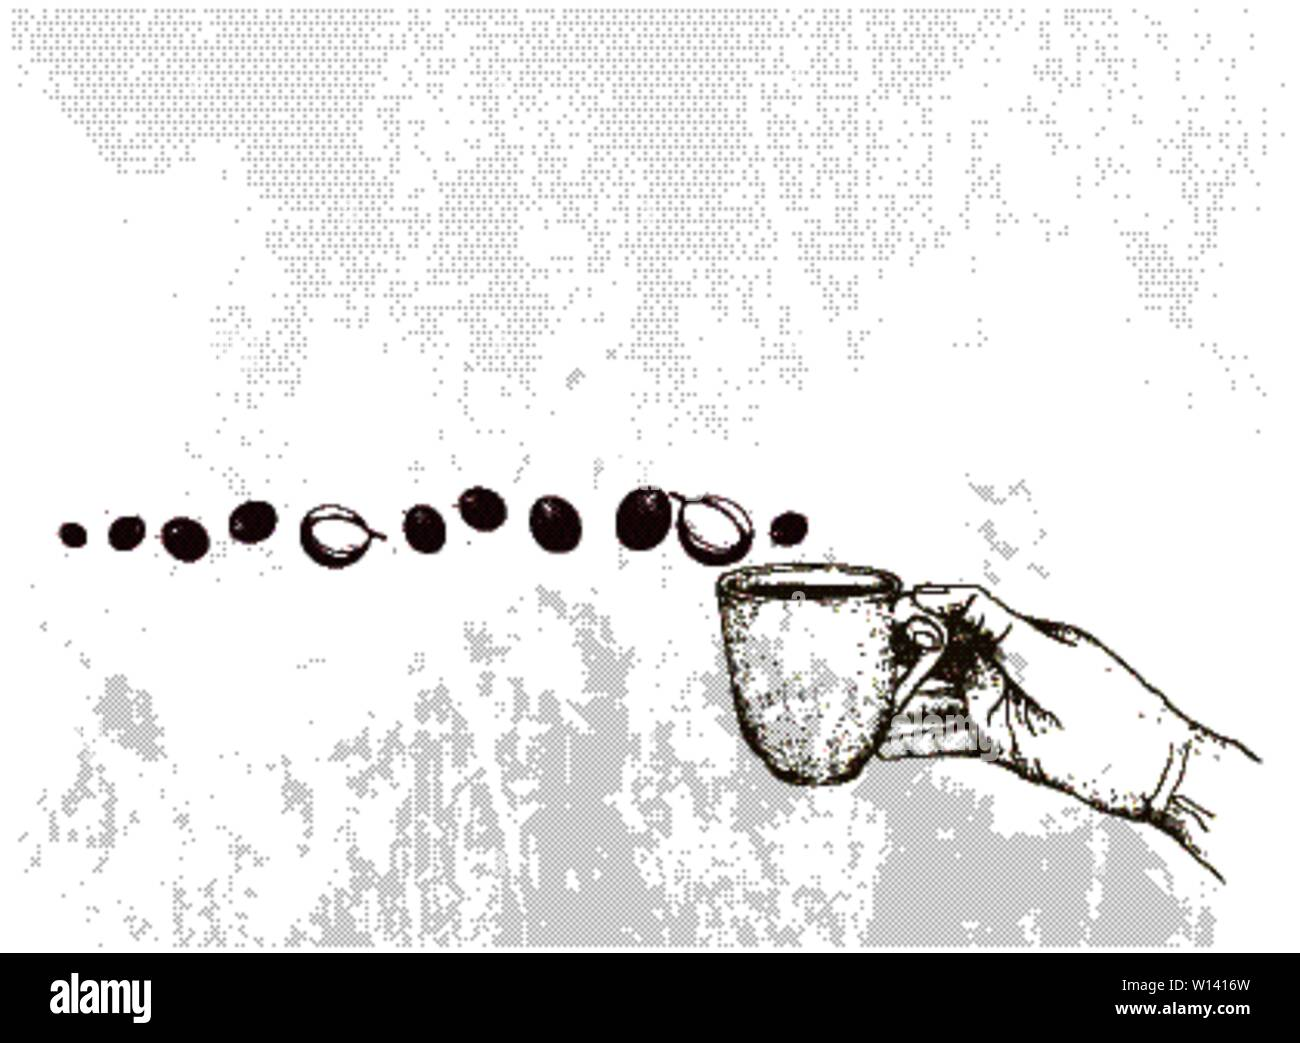 Coffee Time, Illustration Hand Drawn Sketch of Hand Holding A Cup of Coffee with Coffee Beans. Stock Vector